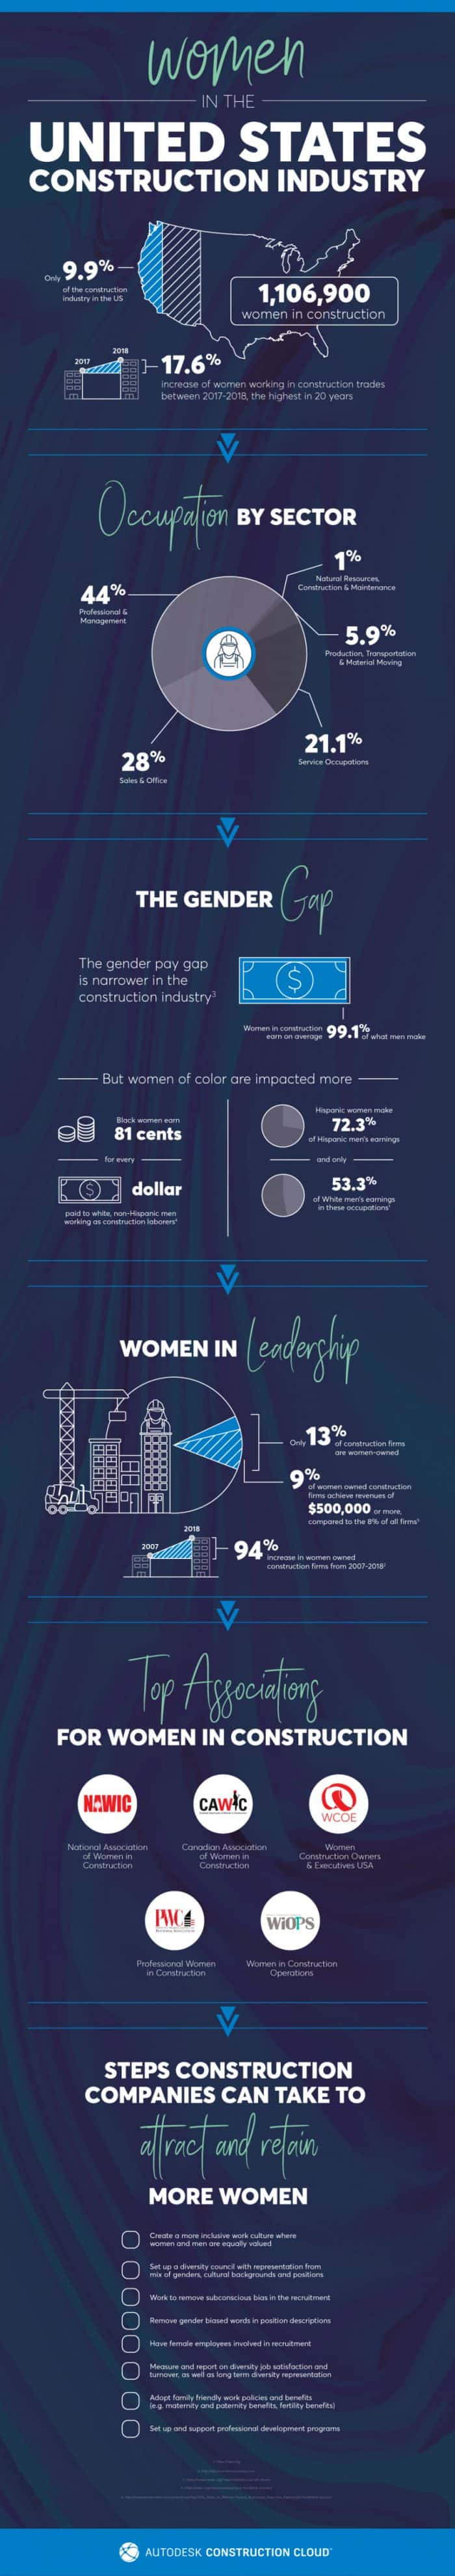 Women in the United States Construction Industry